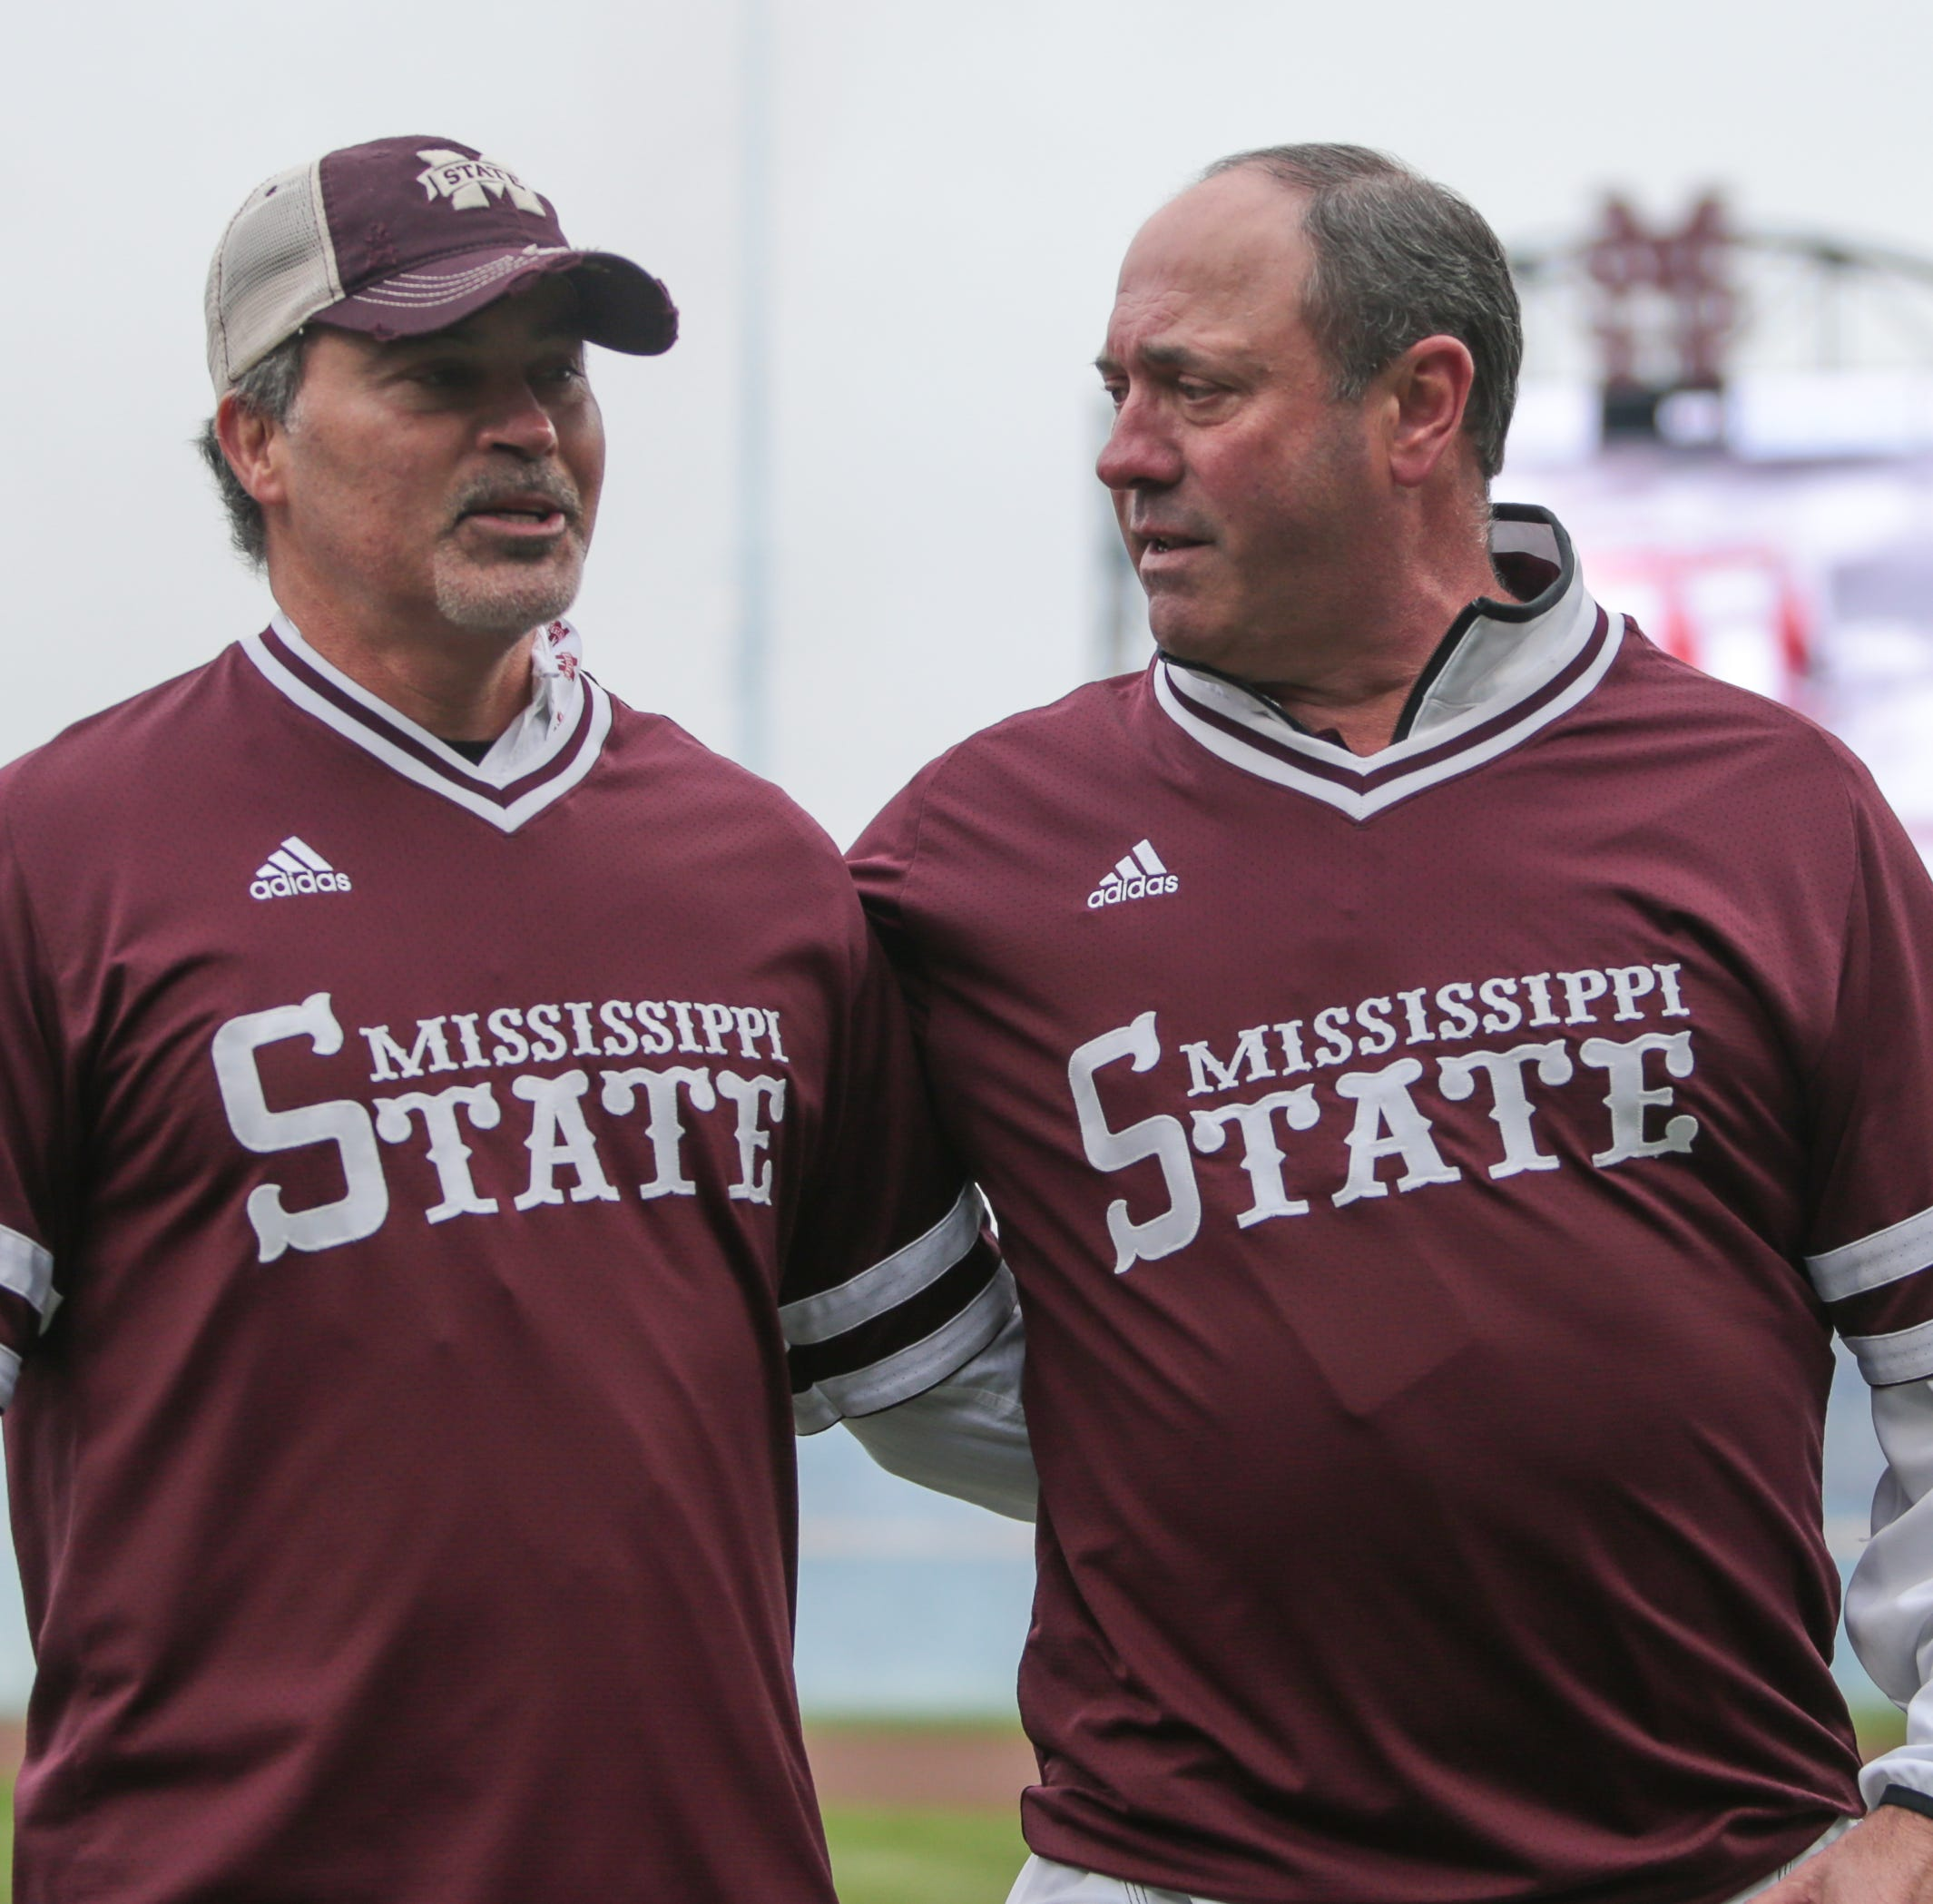 What Rafael Palmeiro, Will Clark said about their Mississippi State statues